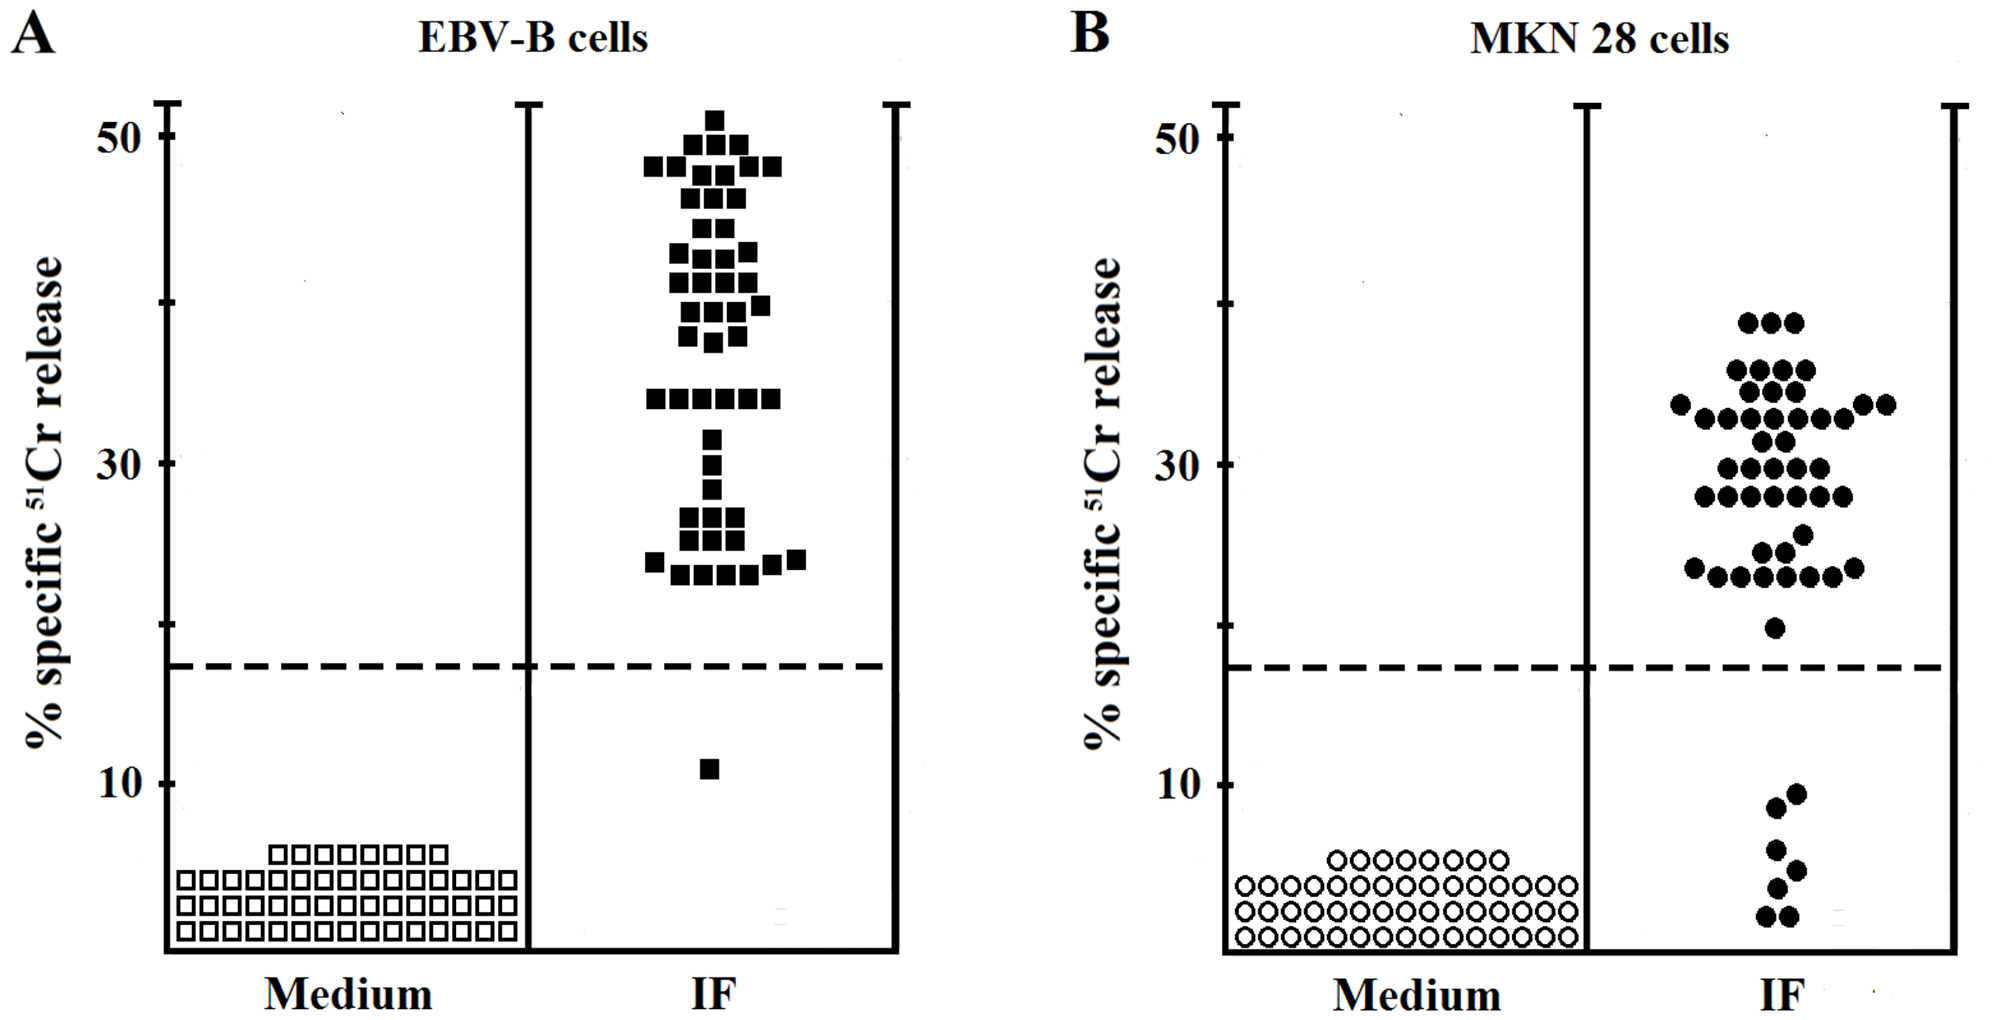 Cytotoxic activity of IF-specific gastric-derived T cells derived from PA patients.